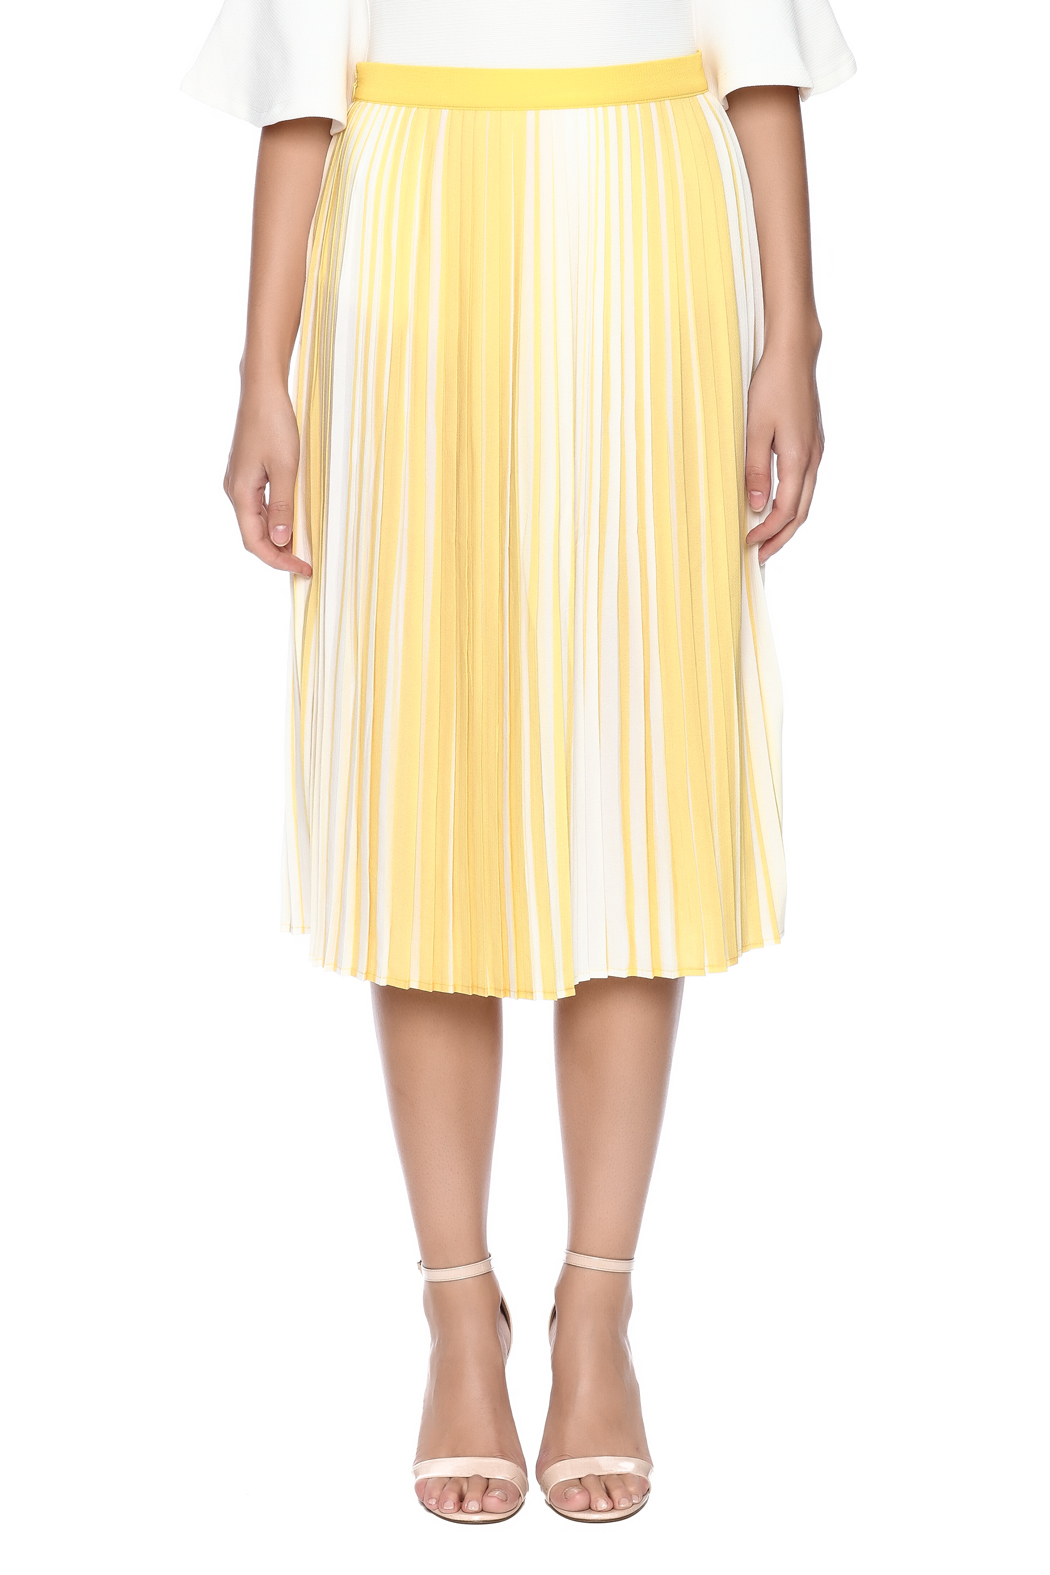 lily white Yellow Striped Skirt - Side Cropped Image